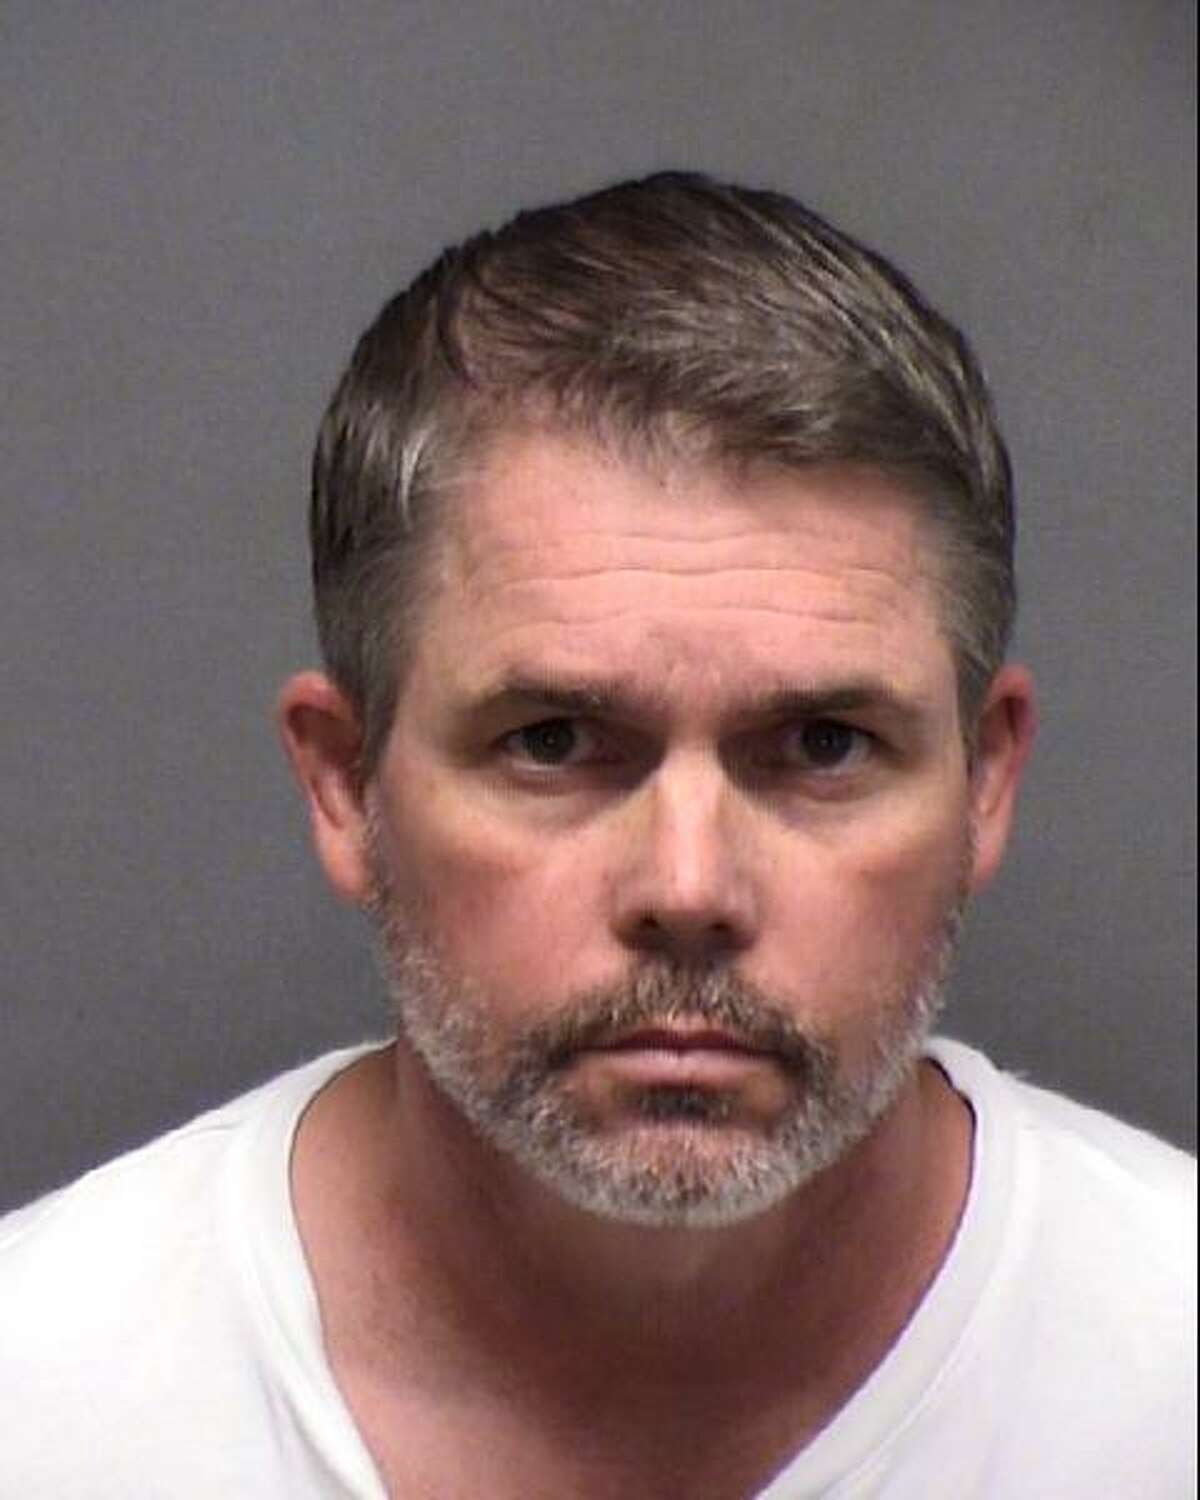 SAPD Sergeant Glenn Michalec, seen in a Sept. 27, 2020, booking photo provided by the Bexar County Sheriff's Department, was arrested about 1:00 a.m. in the 21100 block of Blanco Rd. for DWI, according to an SAPD press release and Bexar County central magistrate records. The 29 year member of the department was booked at the central magistrate office about 8:00 a.m. He appeared before a magistrate at 11:30 a.m. and was related 10 minutes later on an $800 bail, according to central magistrate records. He will be placed on administrative leave while he waits for the outcome of his criminal and administrative investigations, according to the press release.